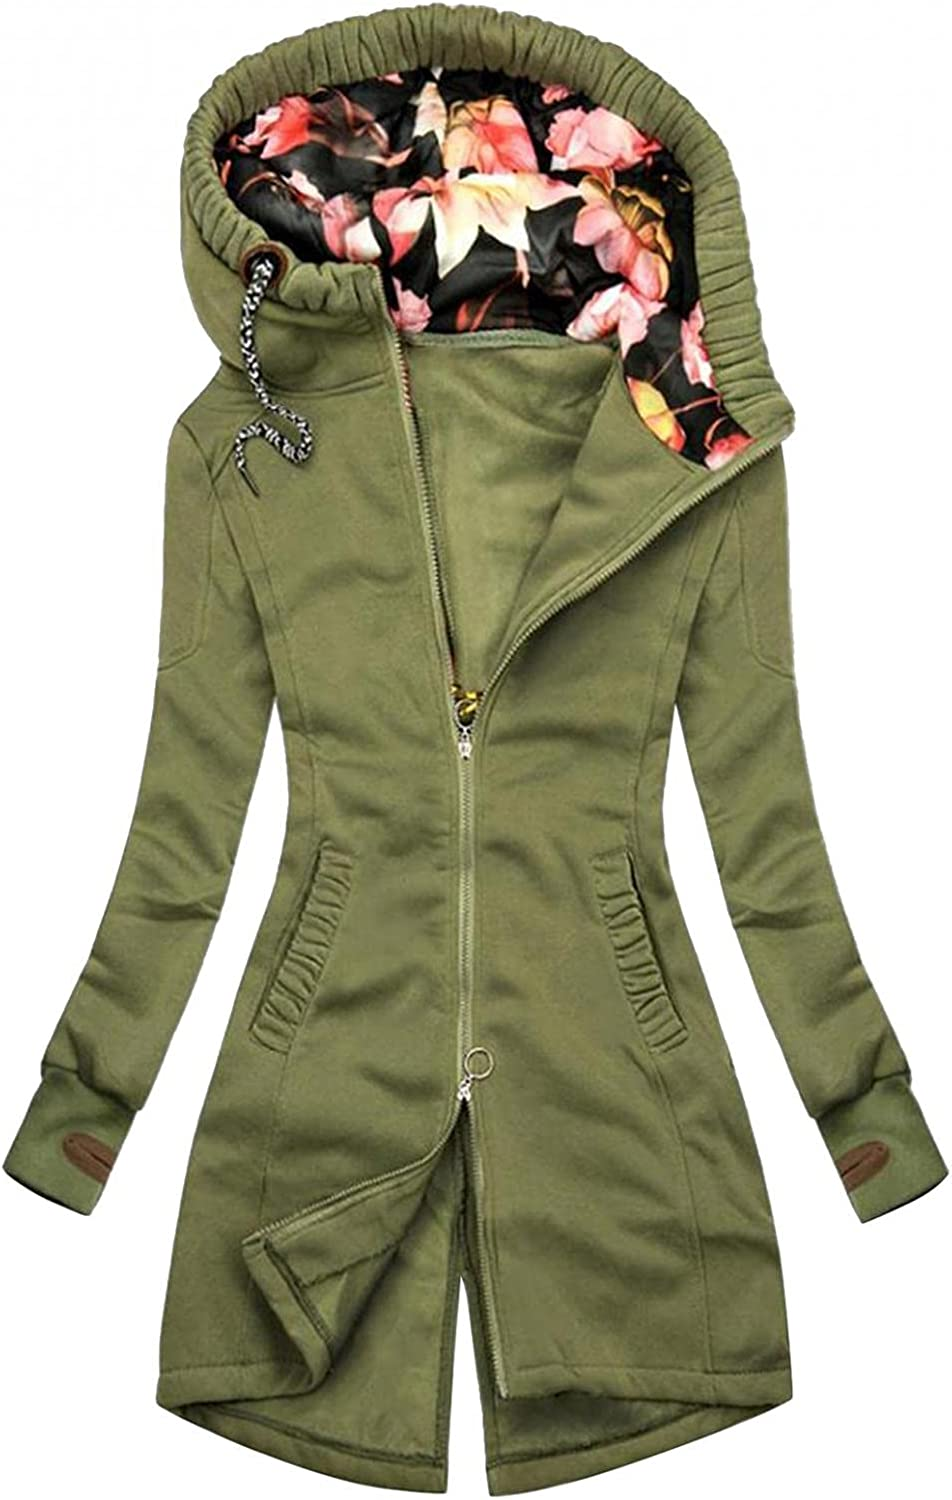 Women's Casual Zip Up Jacket Floral Print Hoodie Pockets Sweatshirt Long Sleeve Outerwear Plus Size Trench Raincoat